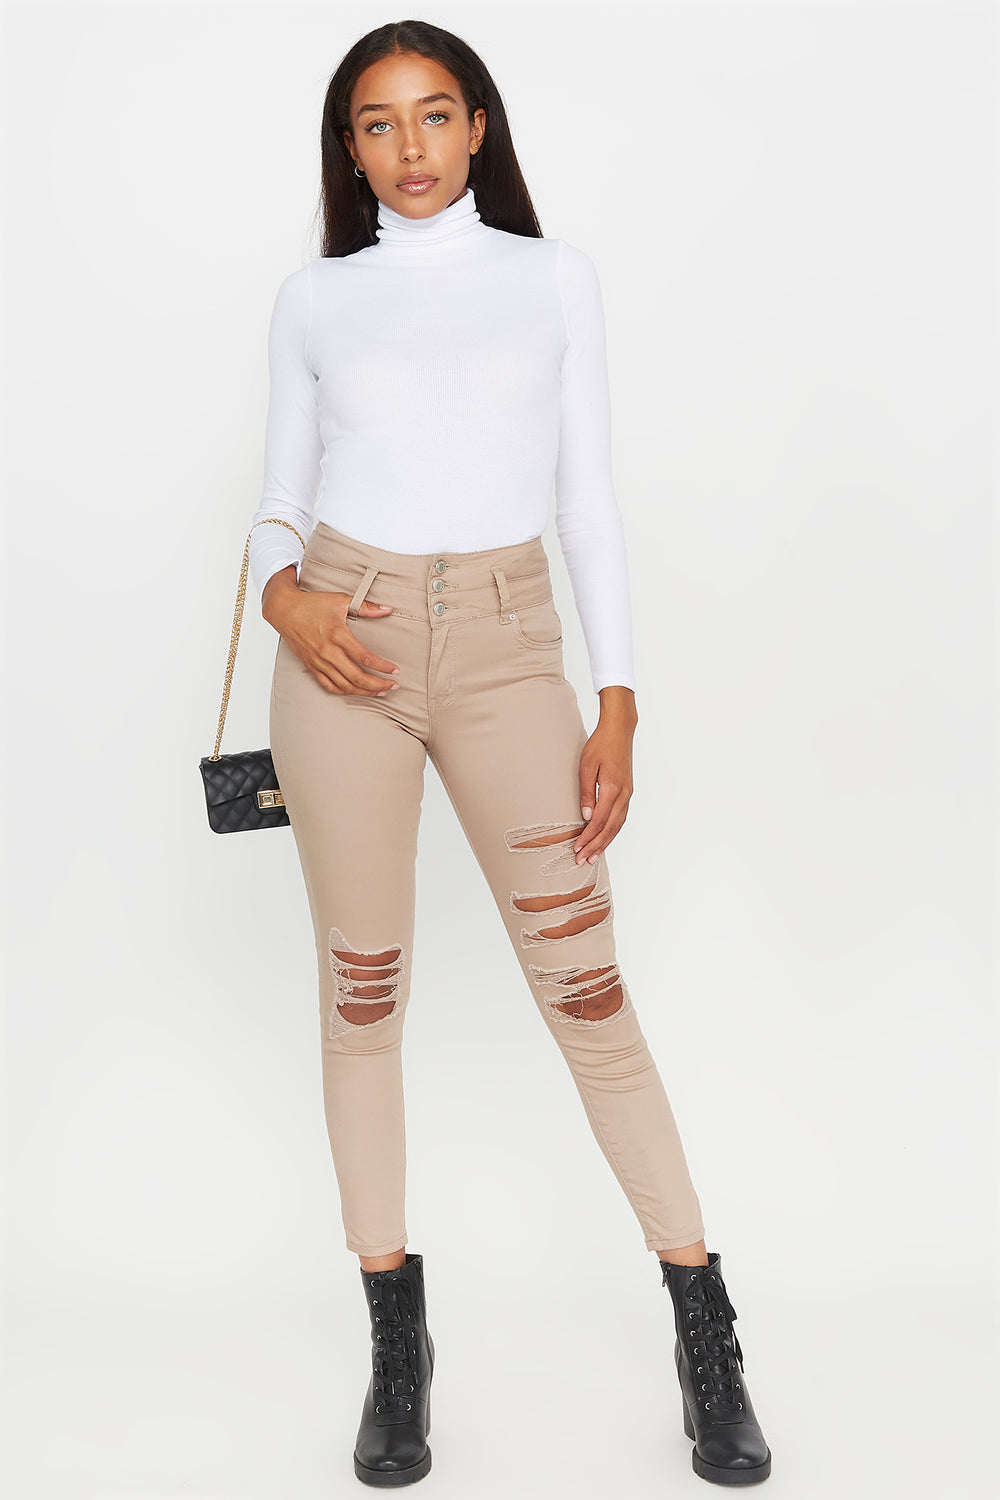 3-Tier High-Rise Push Up Distressed Skinny Jean Taupe